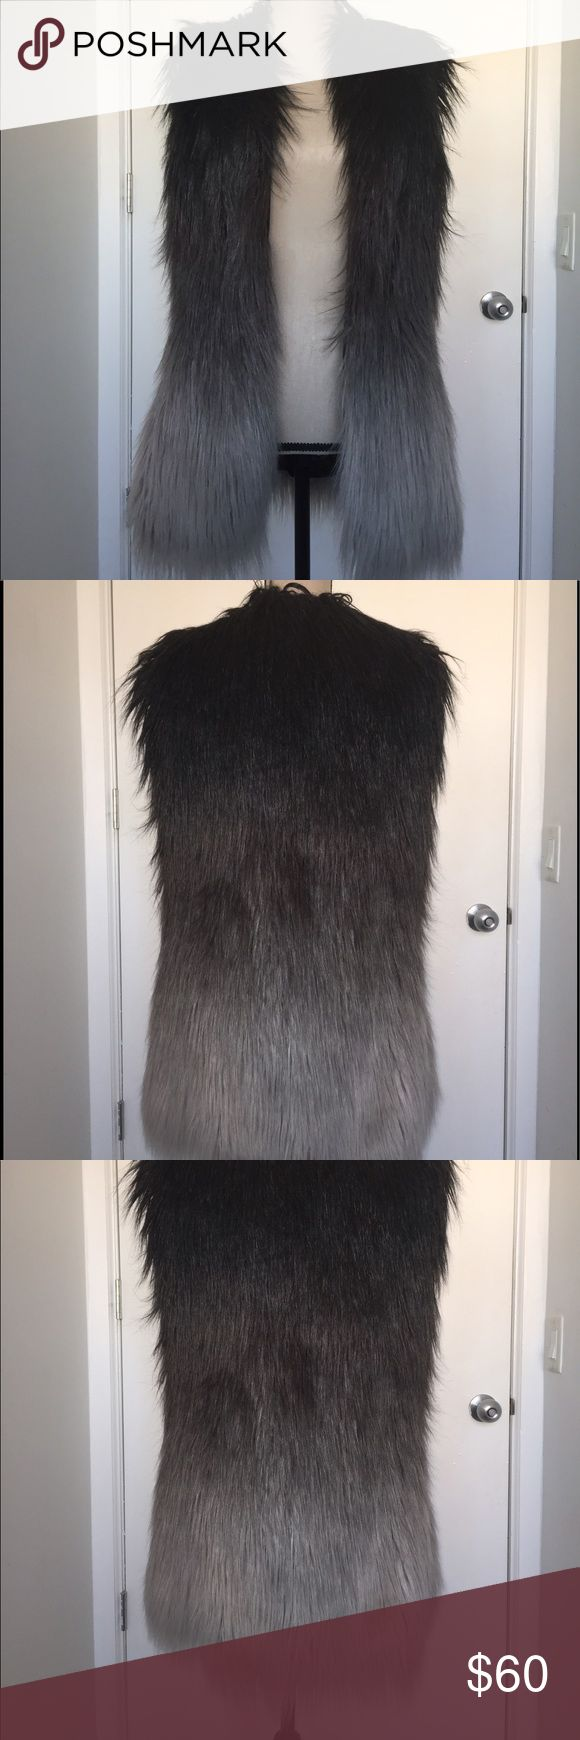 Funky black faux fur ombré vest Never worn. Cool girl vest that will look killer with booties and black skinnies. The fur starts as a dark brown grey and lightens to silver. The fur is long w a slight shine. Size M Fabulous Furs Jackets & Coats Vests